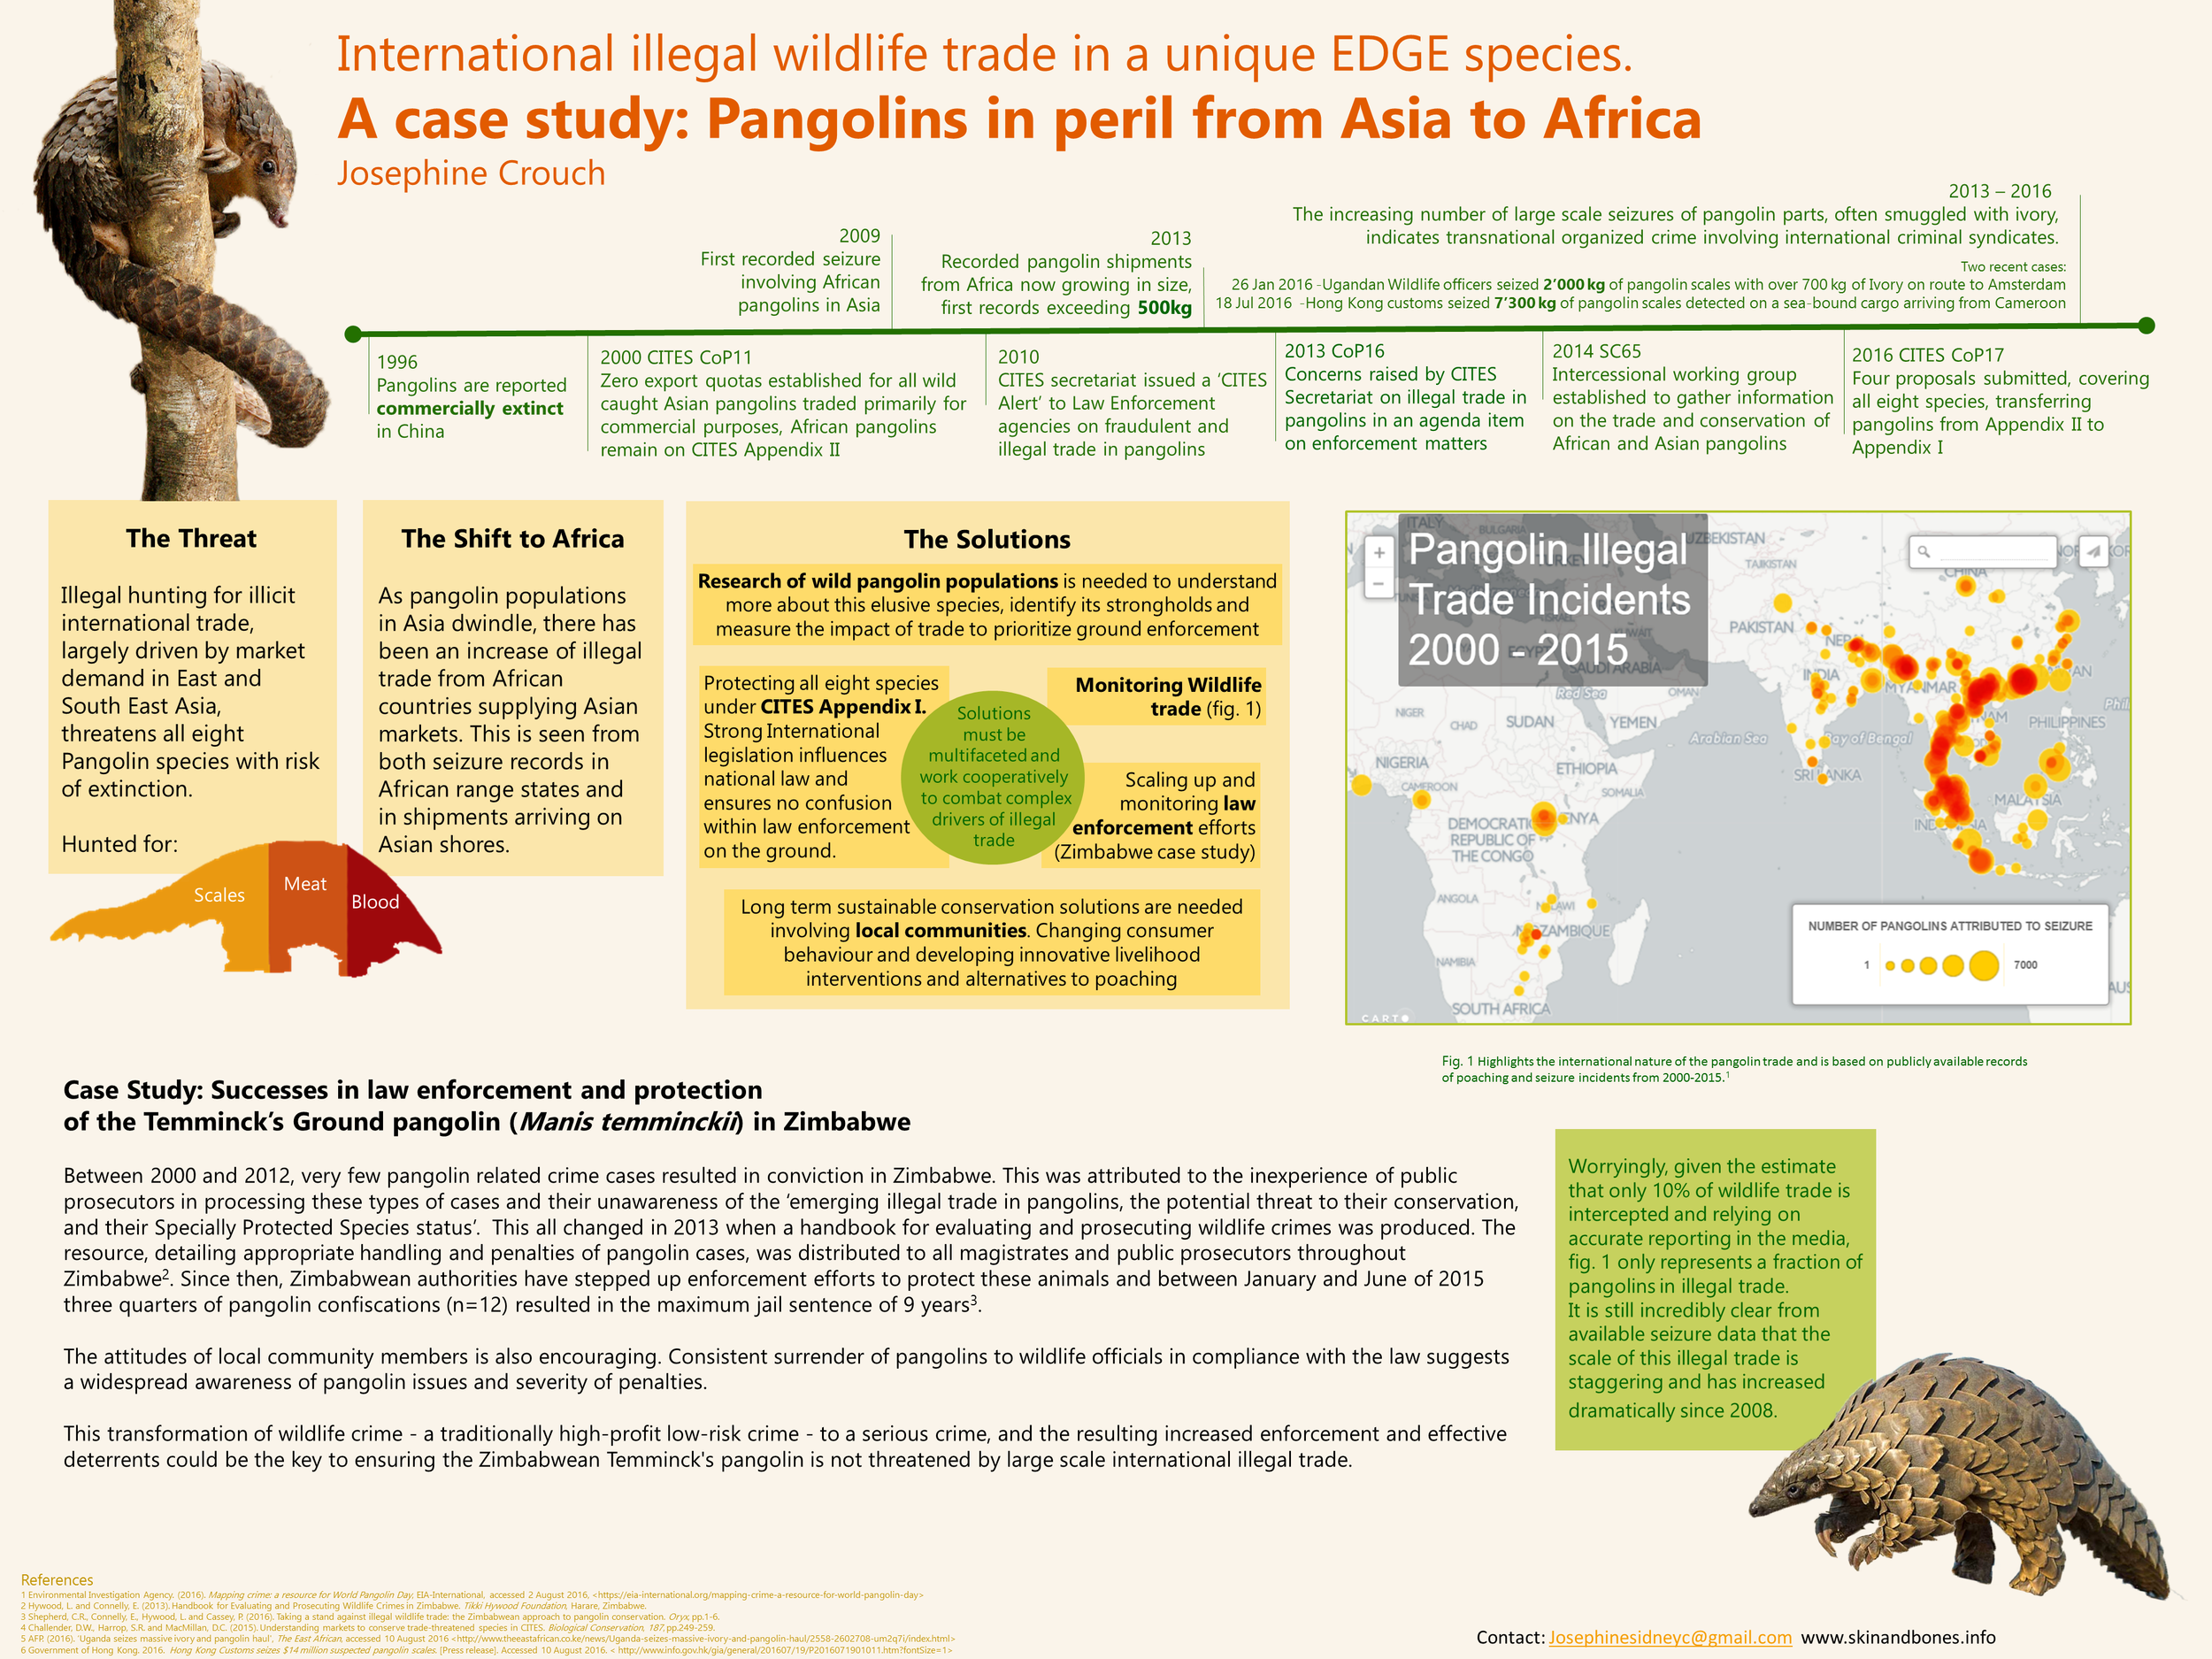 A modified poster presented at a side event during the 17th COP of CITES September 2016. Author Josephine Crouch